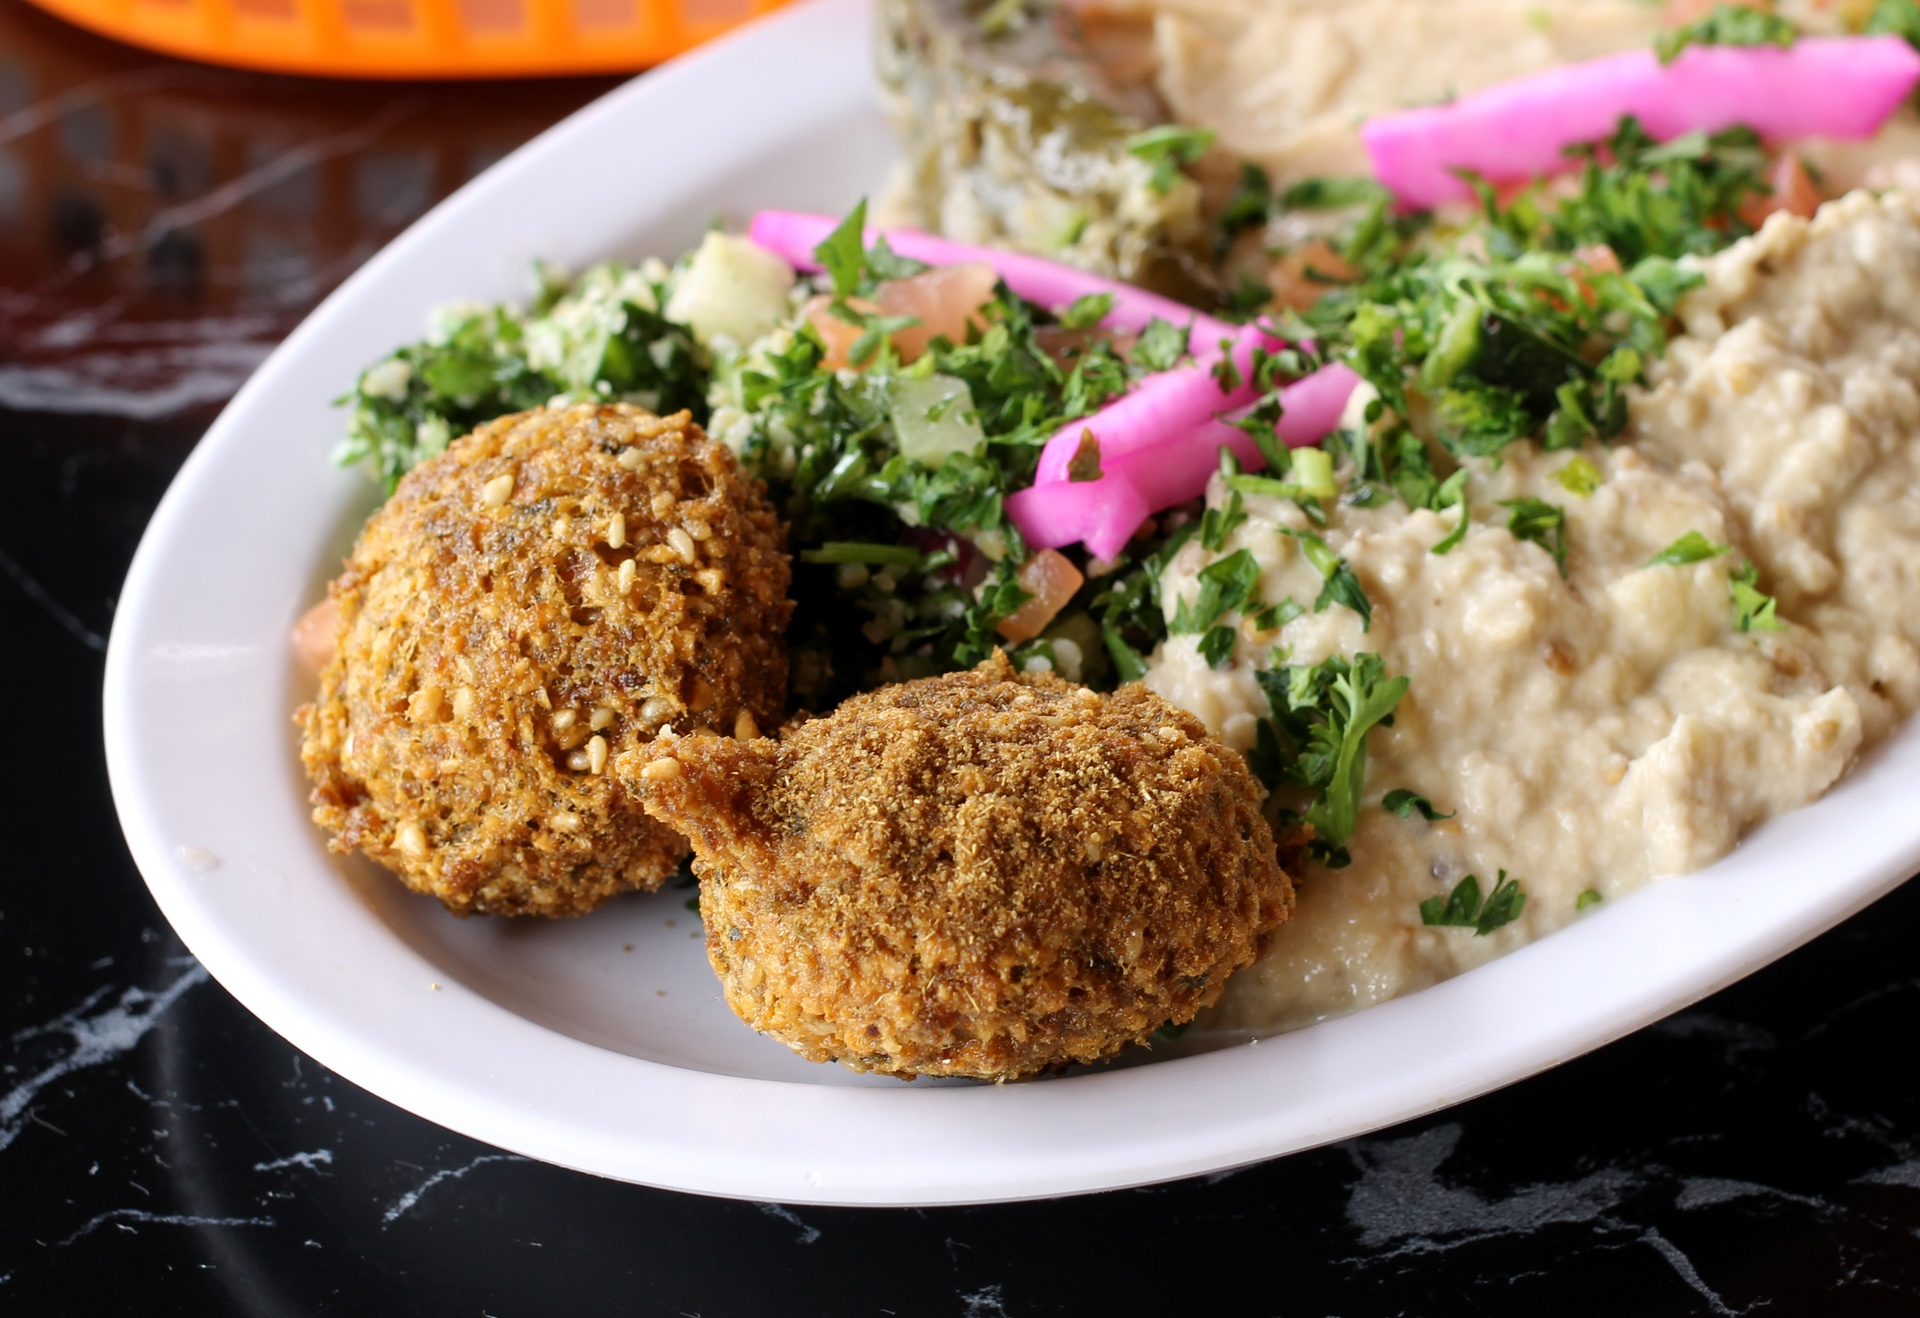 The vegetarian plate at King of Falafel in San Francisco.